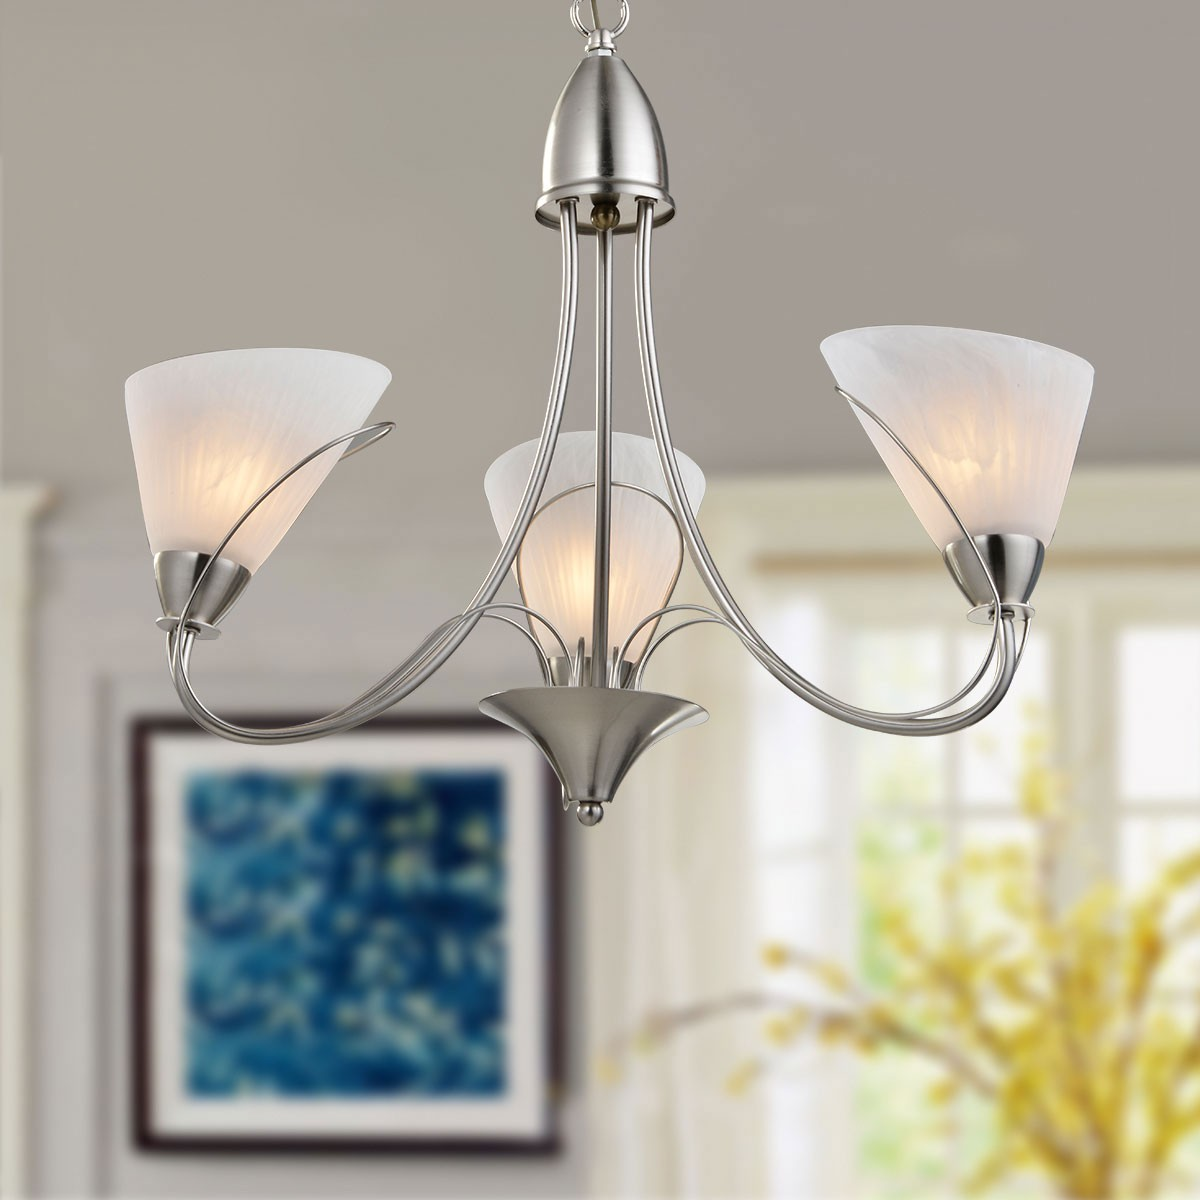 3-Light Silver Iron Modern Chandelier with Glass Shades (HKP31262-3)